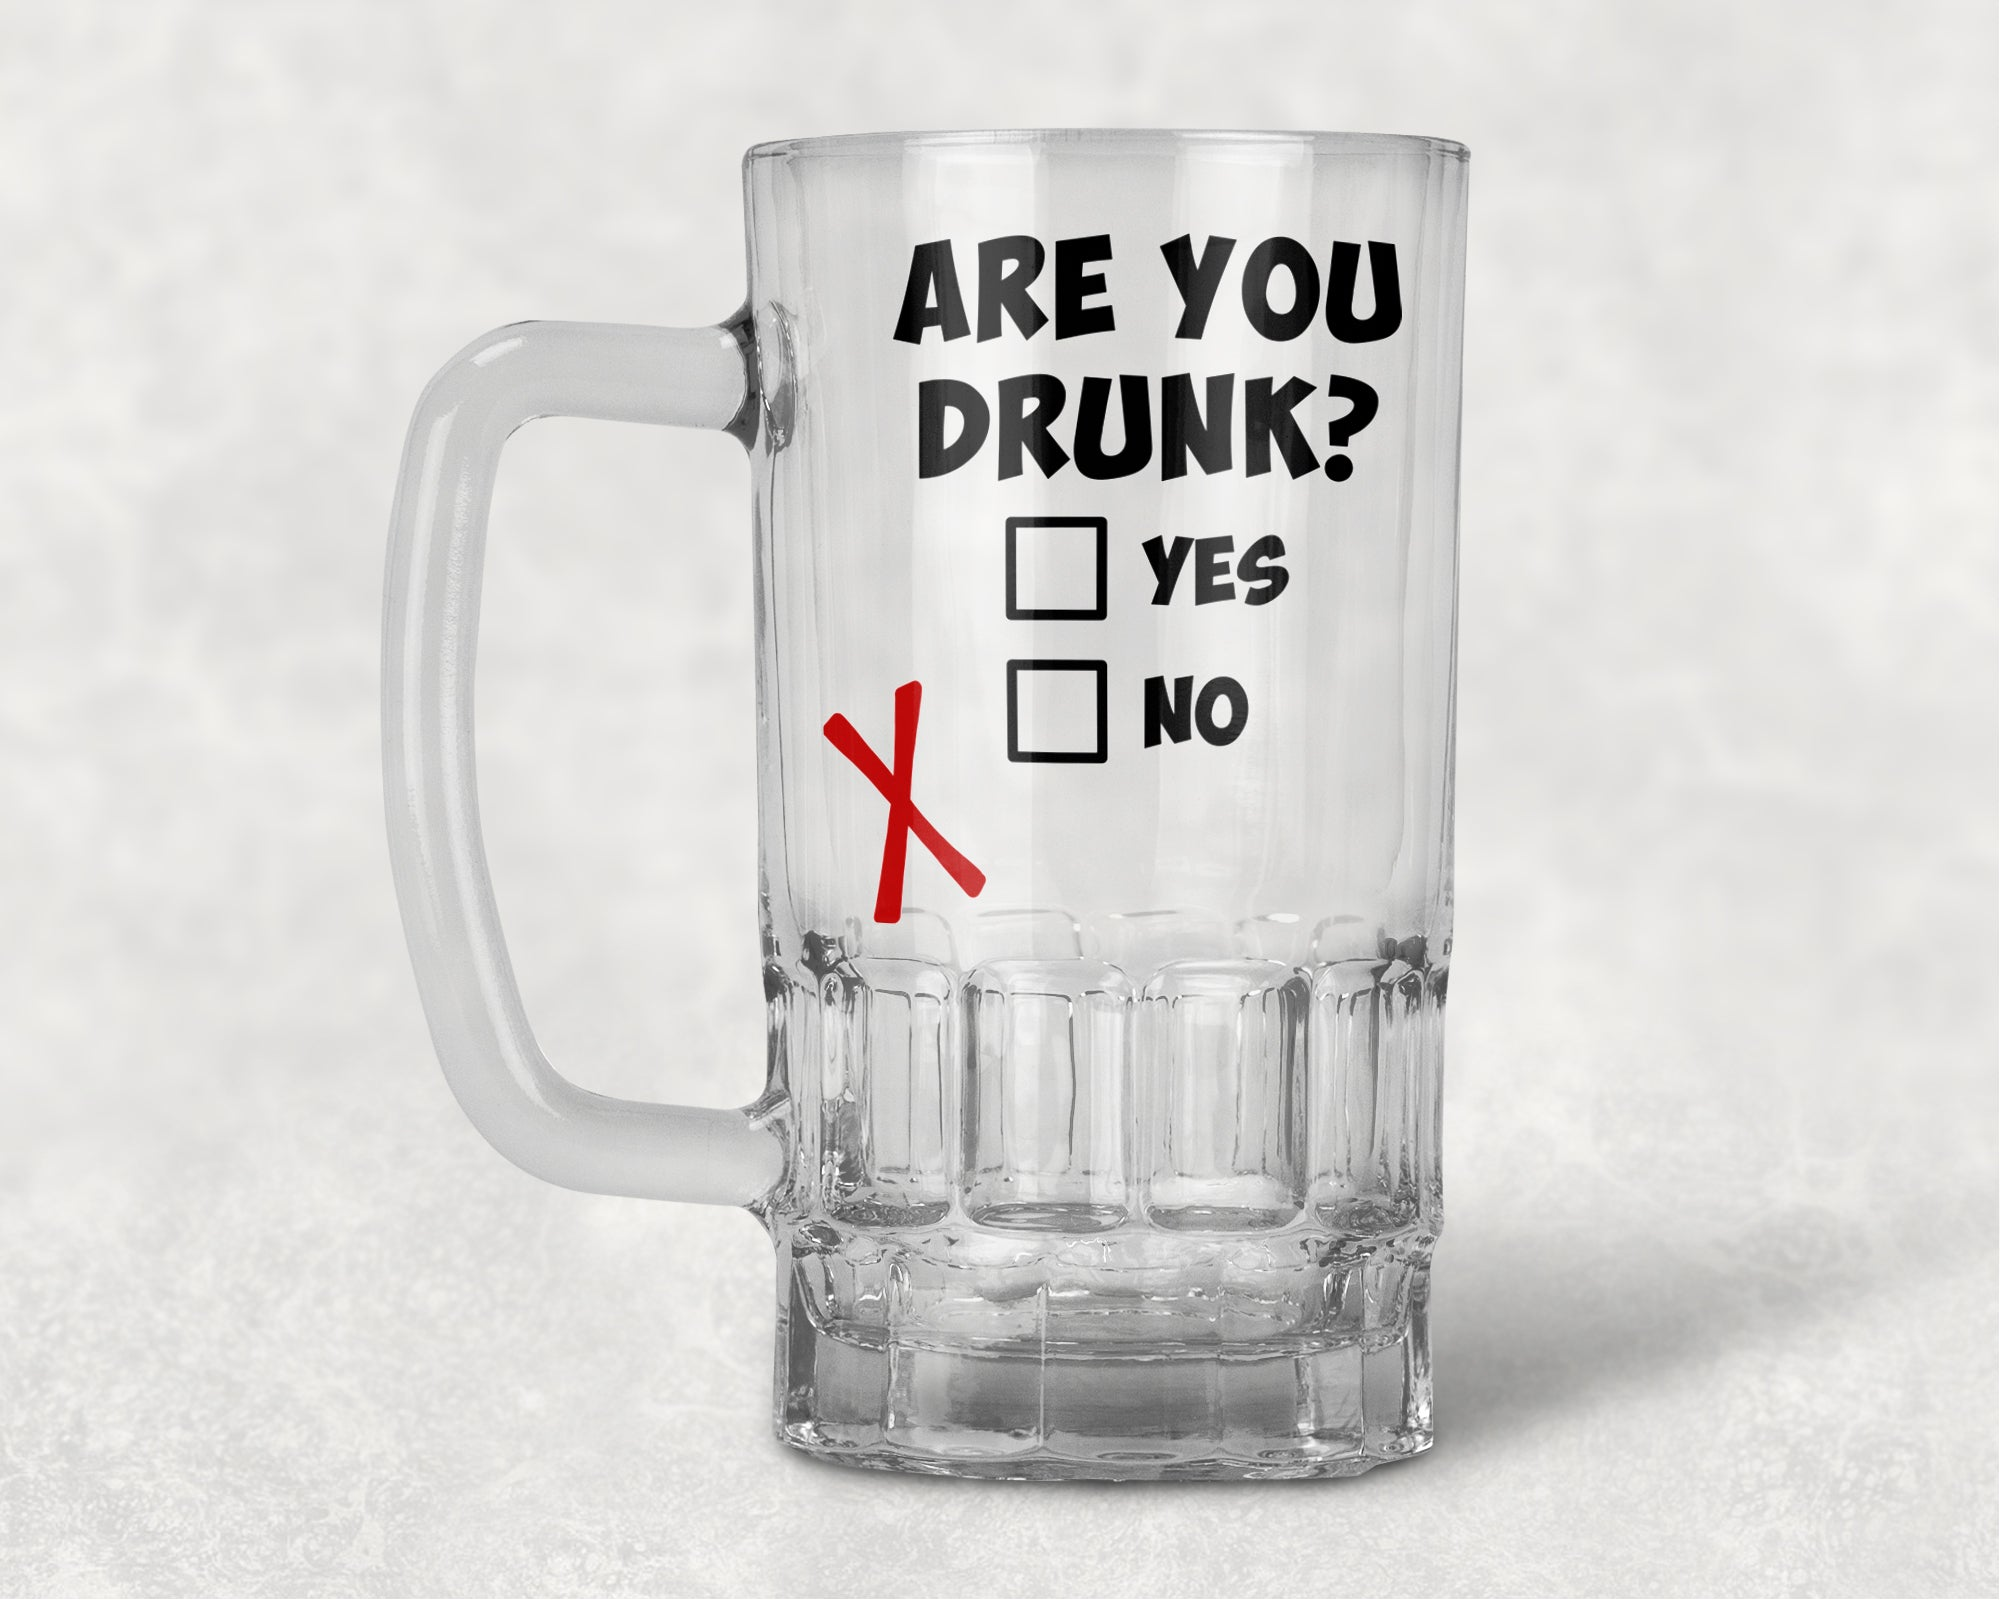 BEER SVG FILE, Funny Beer Mug Saying SVG, Groomsman Gift SVG, Vinyl Sayings Beer, Are You Drunk Yes or No SVG, Beer Quote SVG, SVG FILES for Cricut